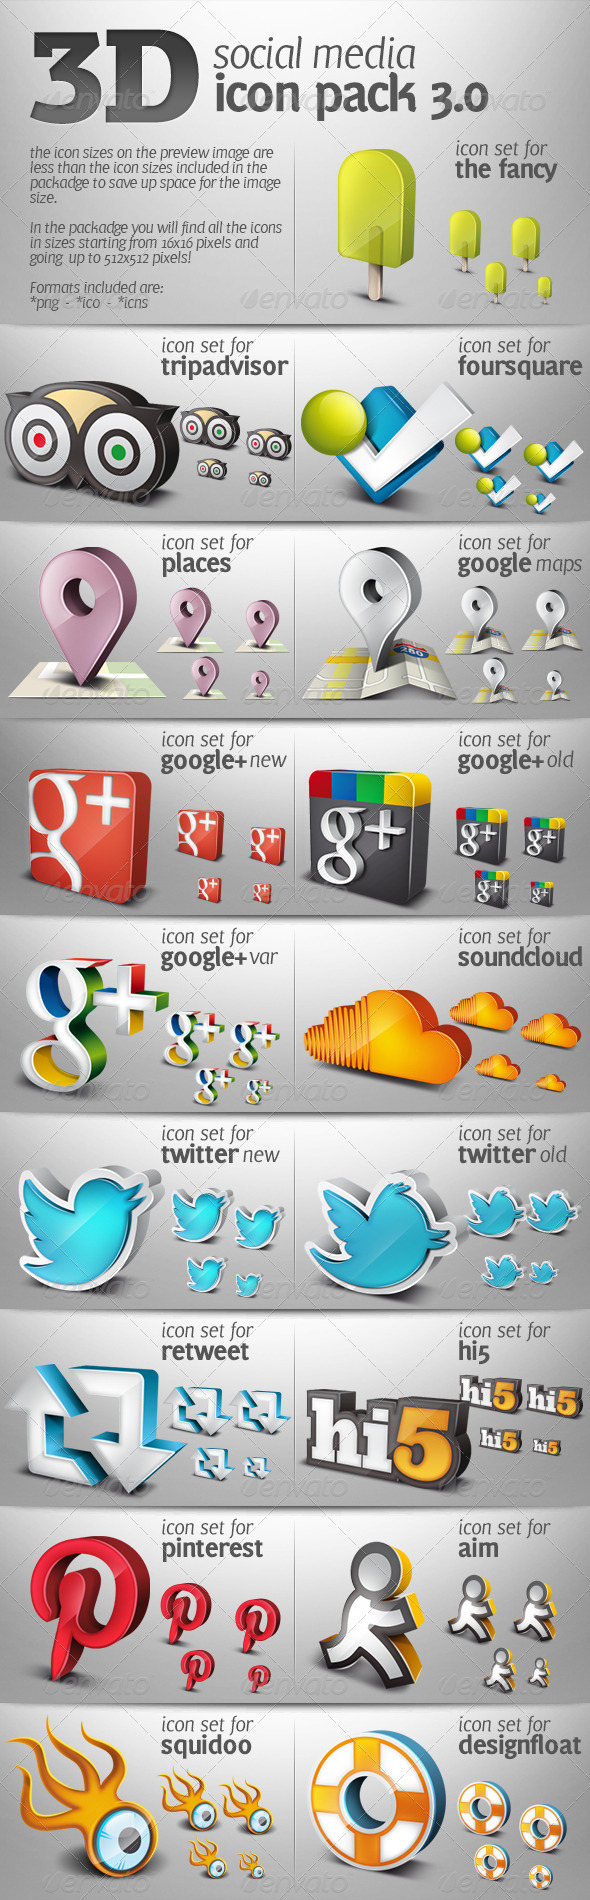 GraphicRiver 3D Social Media Icons Pack 03 3519044